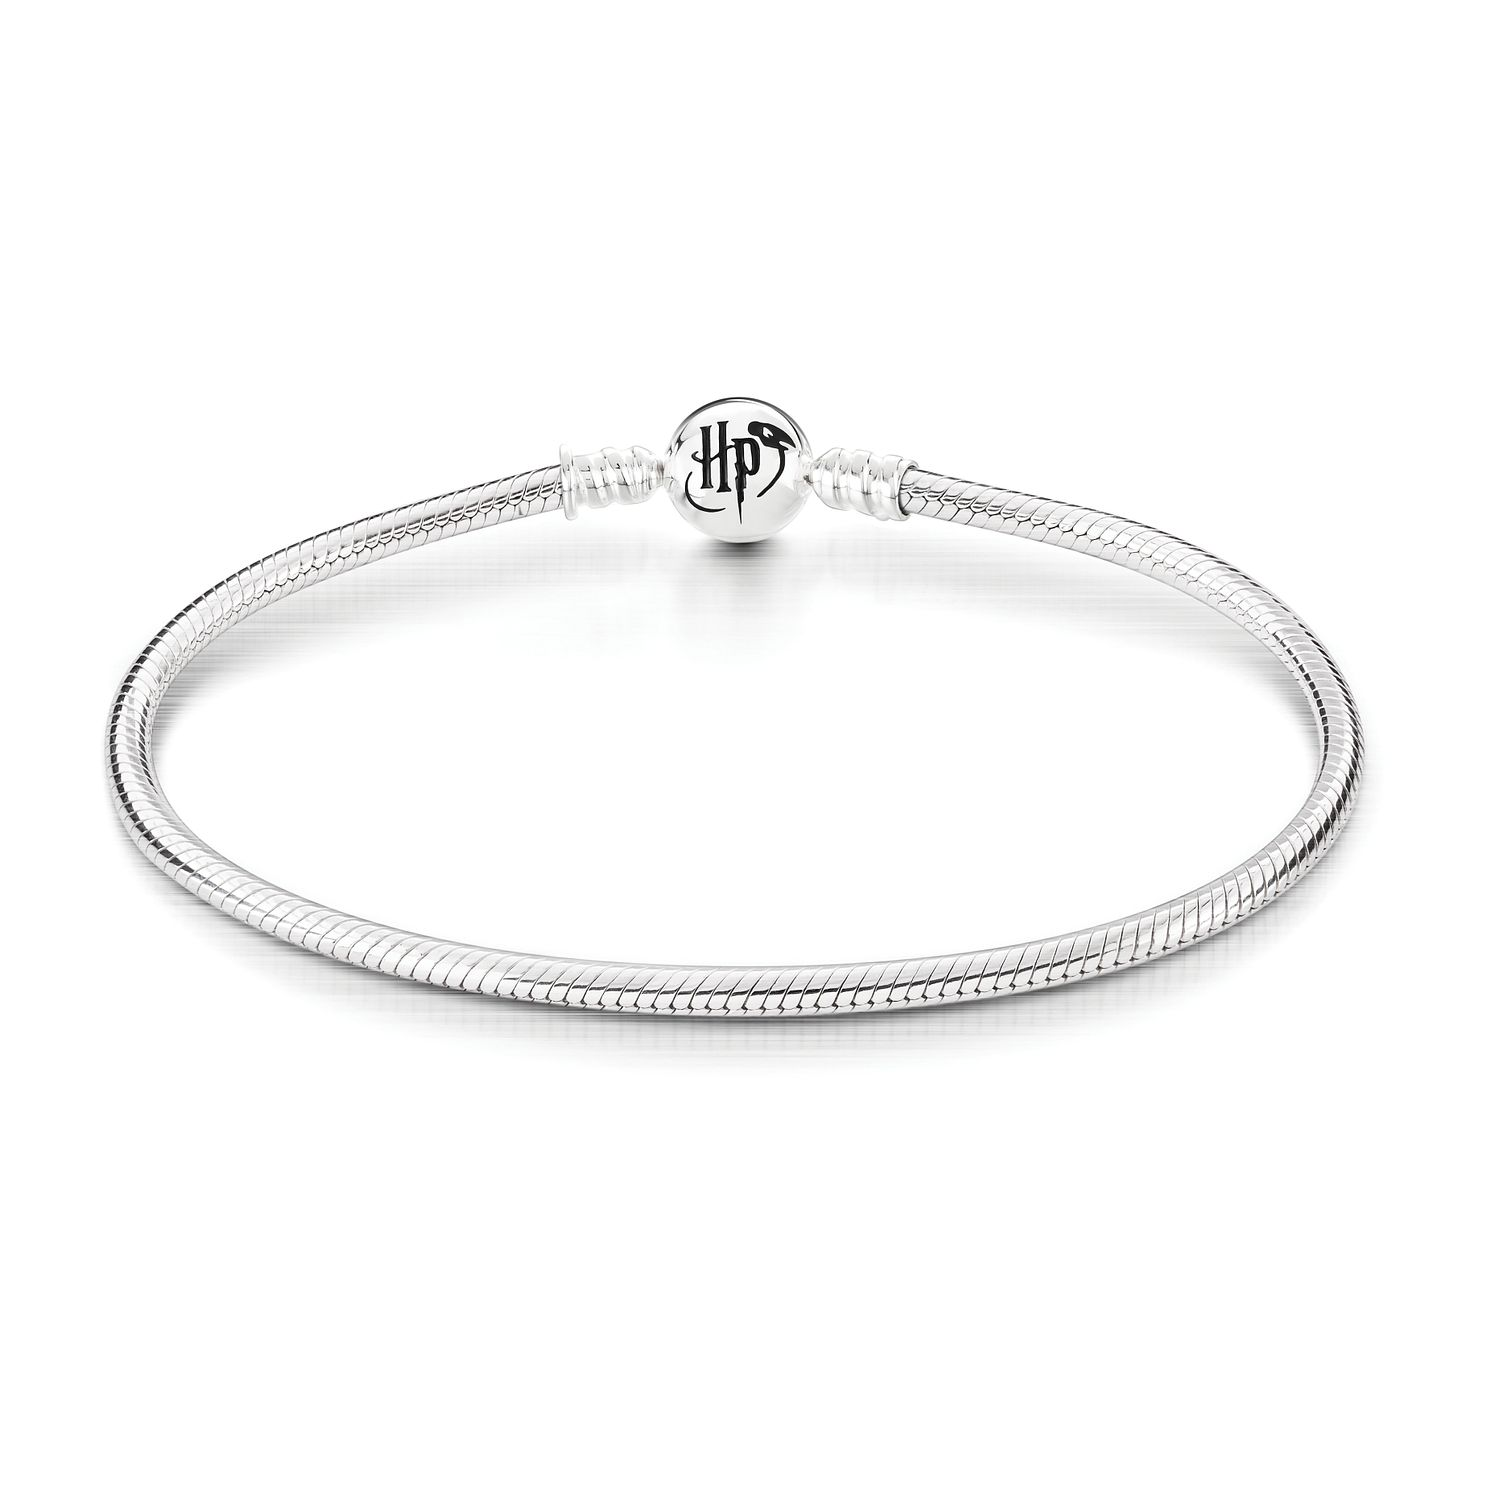 Chamilia Harry Potter Snake Chain Bracelet - Large - Product number 3172171